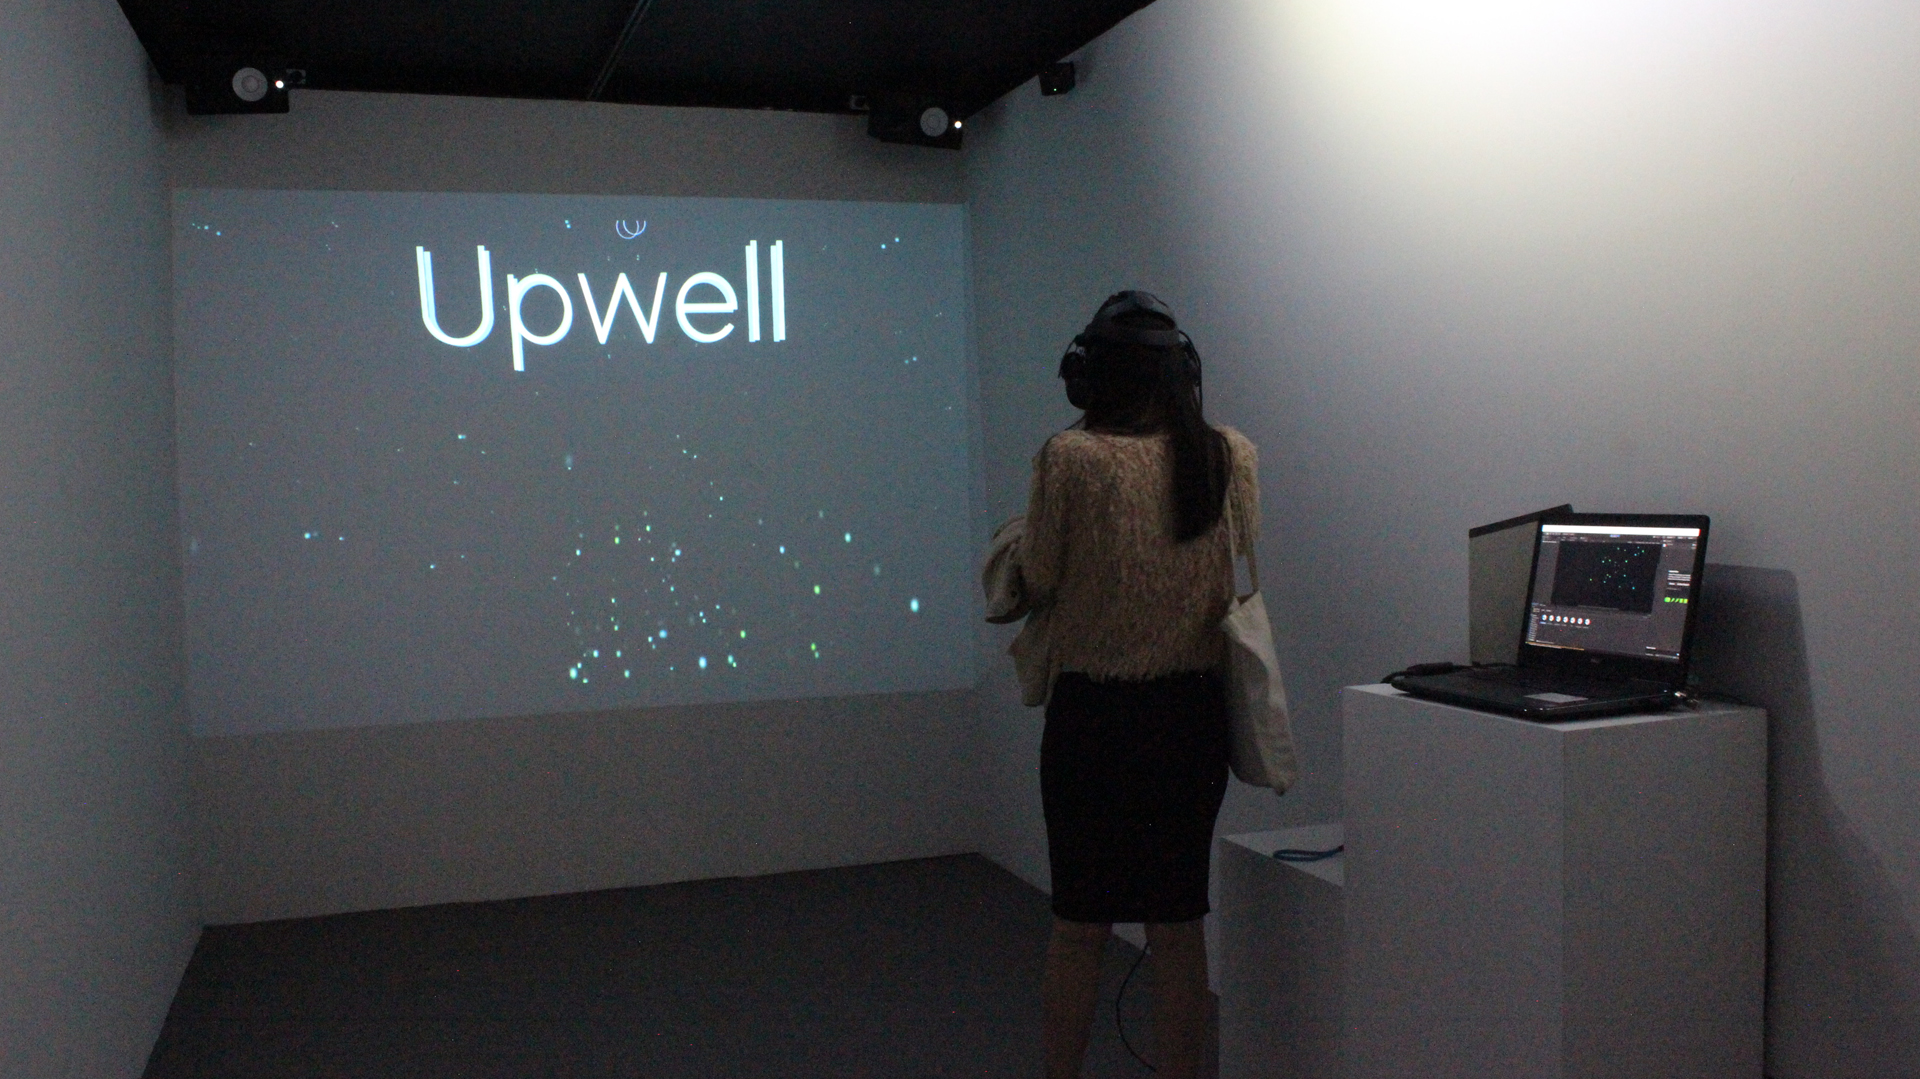 ©, Jinsil Hwaryoung Seo and Michael Bruner, Upwell: Performative Immersion